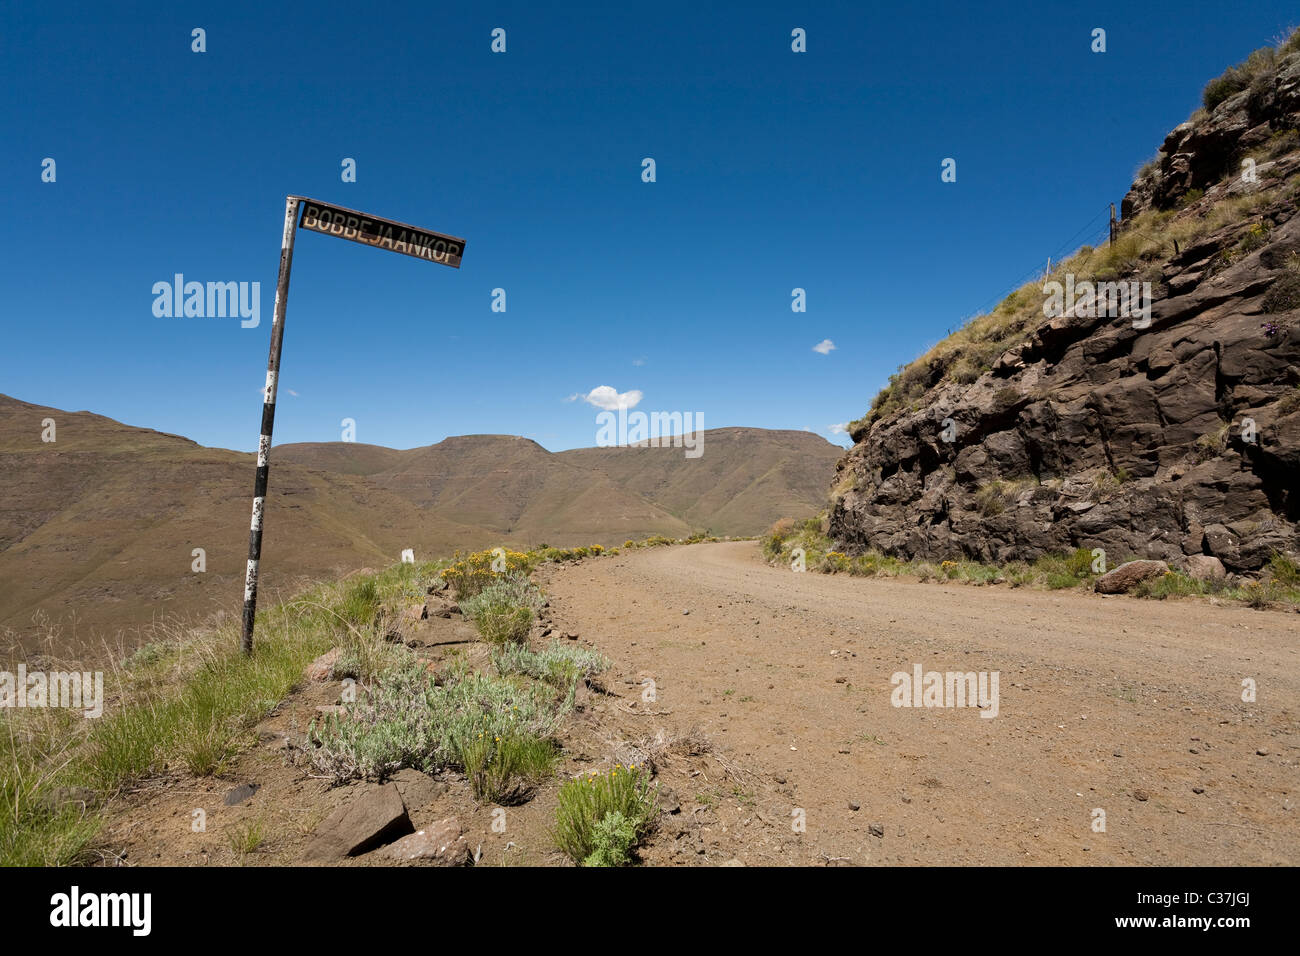 A road sign on a bend in the dirt road near Rhodes, South Africa. - Stock Image